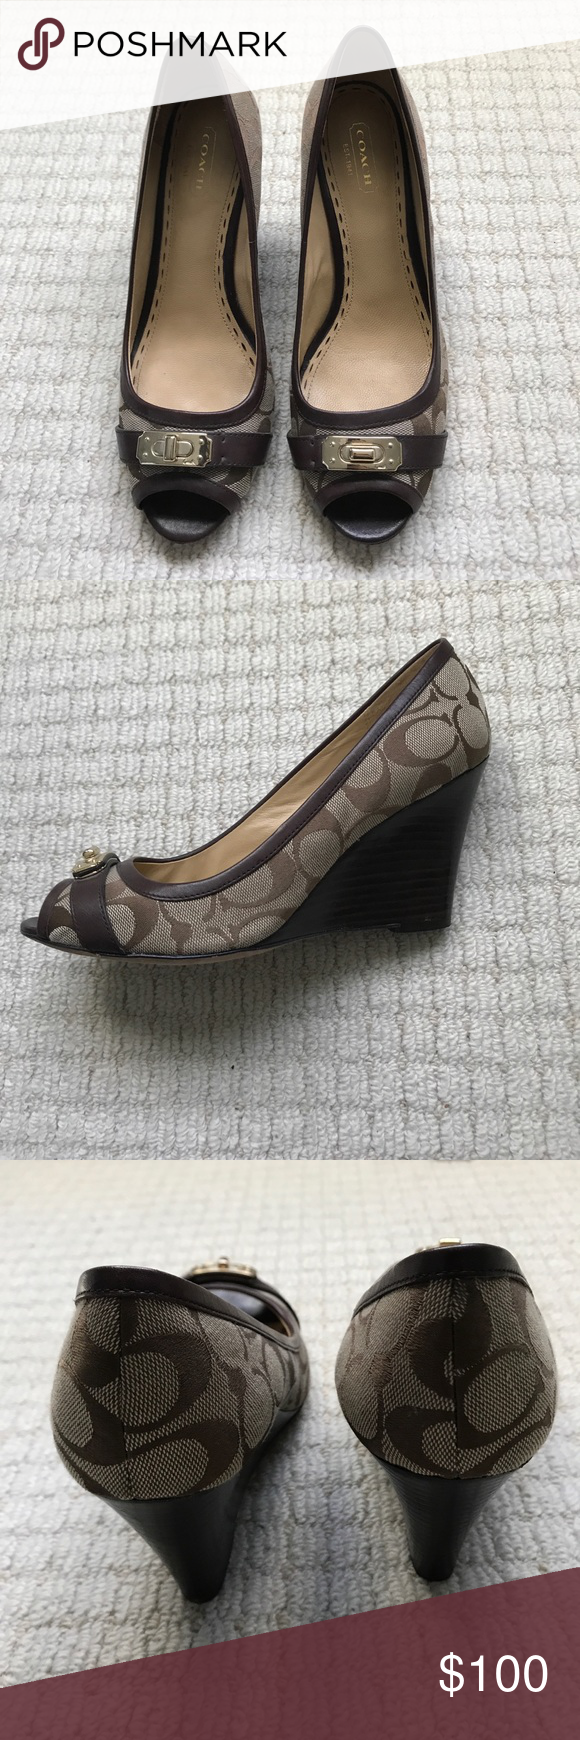 Coach wedges This shoes has been lightly worn and doesn't have any big damage. Only scratches at the bottom and light superficial one on the heel (not very noticeable). The fit it's flattering and it's very comfortable on. Coach Shoes Wedges